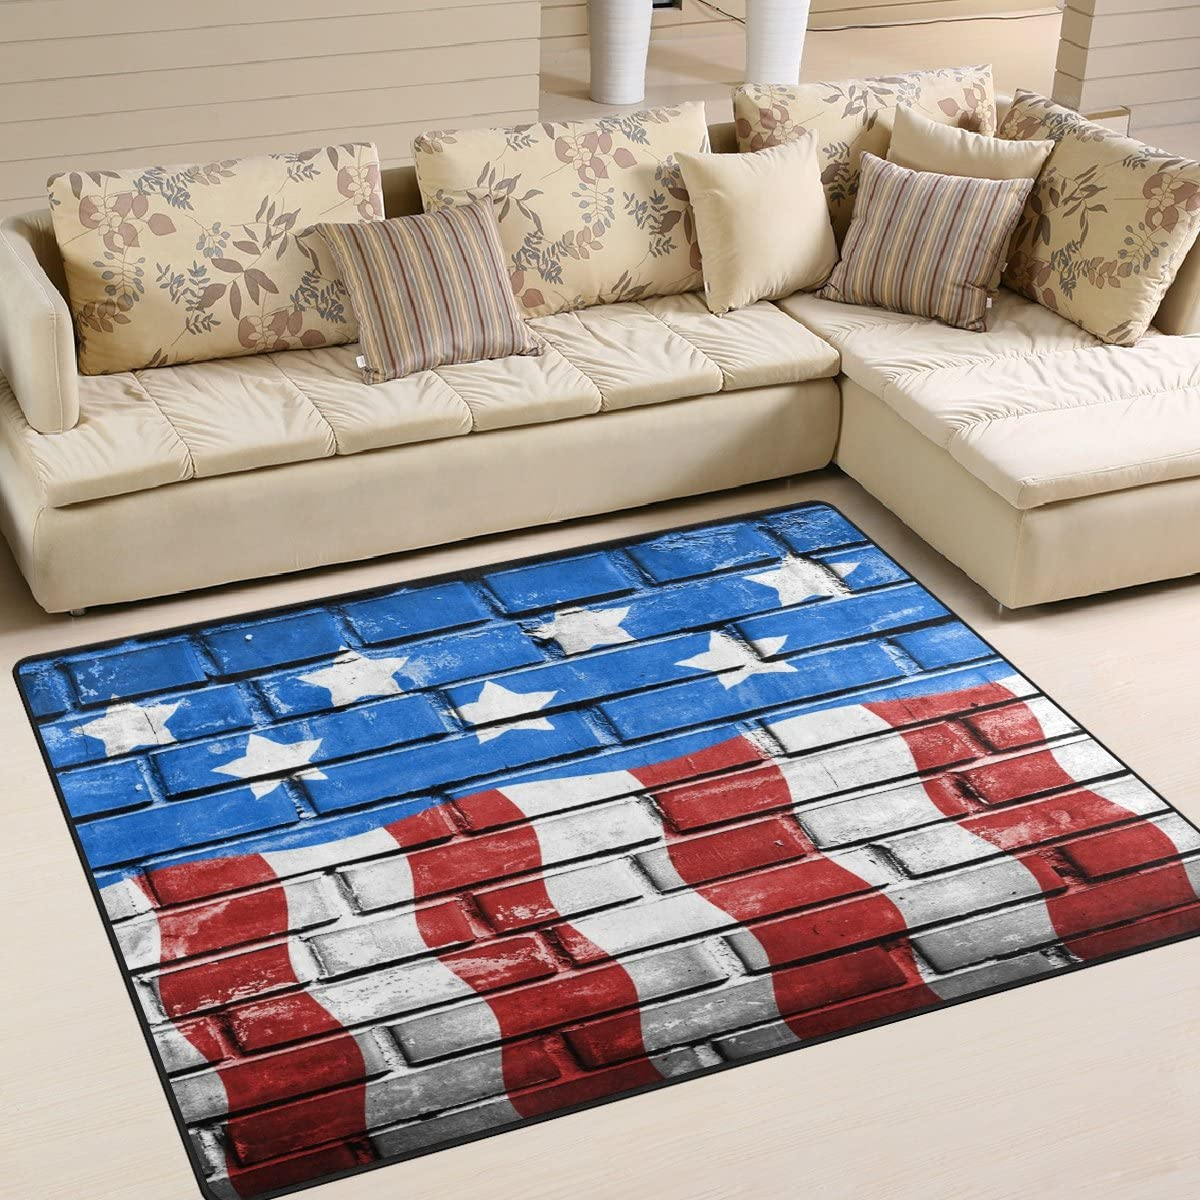 B072NB7NKW Brick Wall American Flag 4th of July Independence Memorial Day Patriotic Freedom Ripple Waves Area Rug Pad Non-Skid Kitchen Floor Mat for Living Room Bedroom 5'x7' Doormats Home Decor 8123fBbWiAL